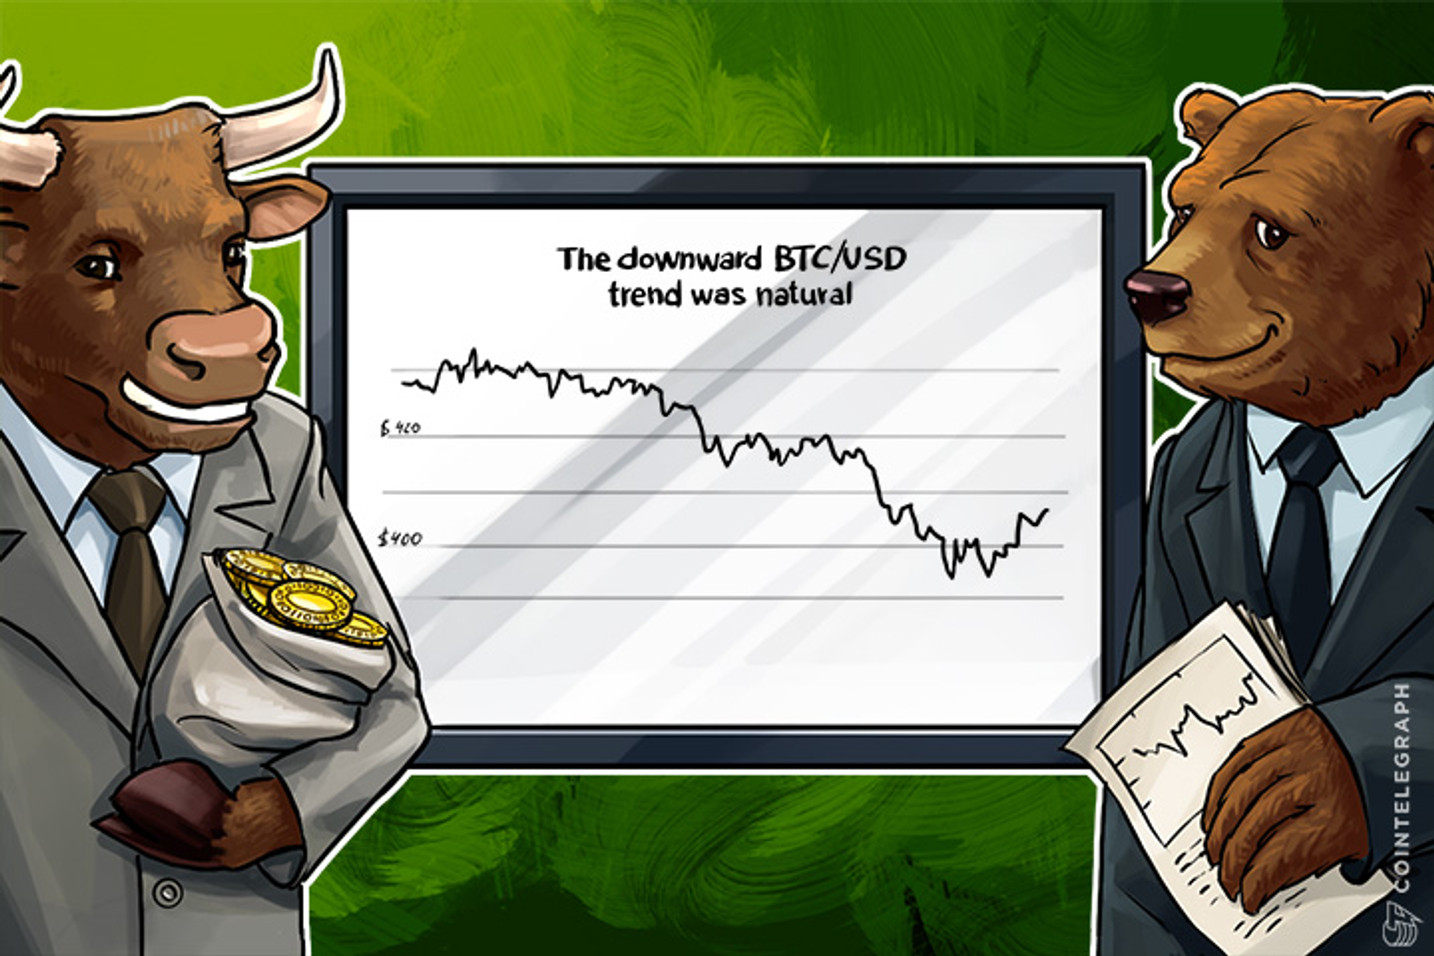 Bitcoin's Price Downward Trend was Natural